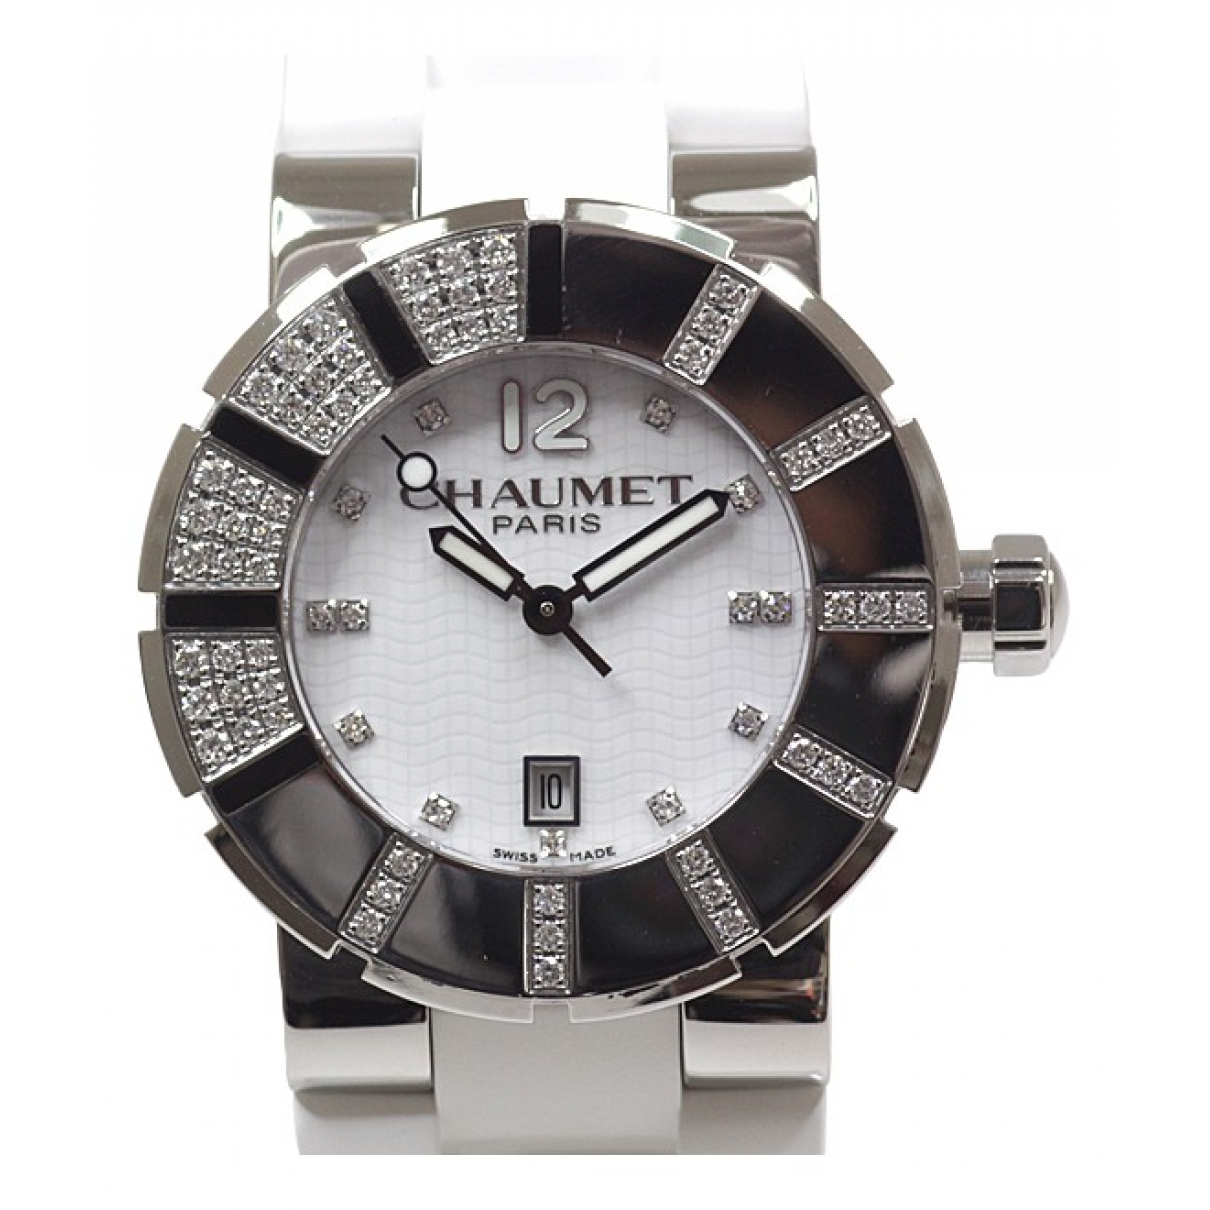 Chaumet Class One Uhr in  Weiss Stahl